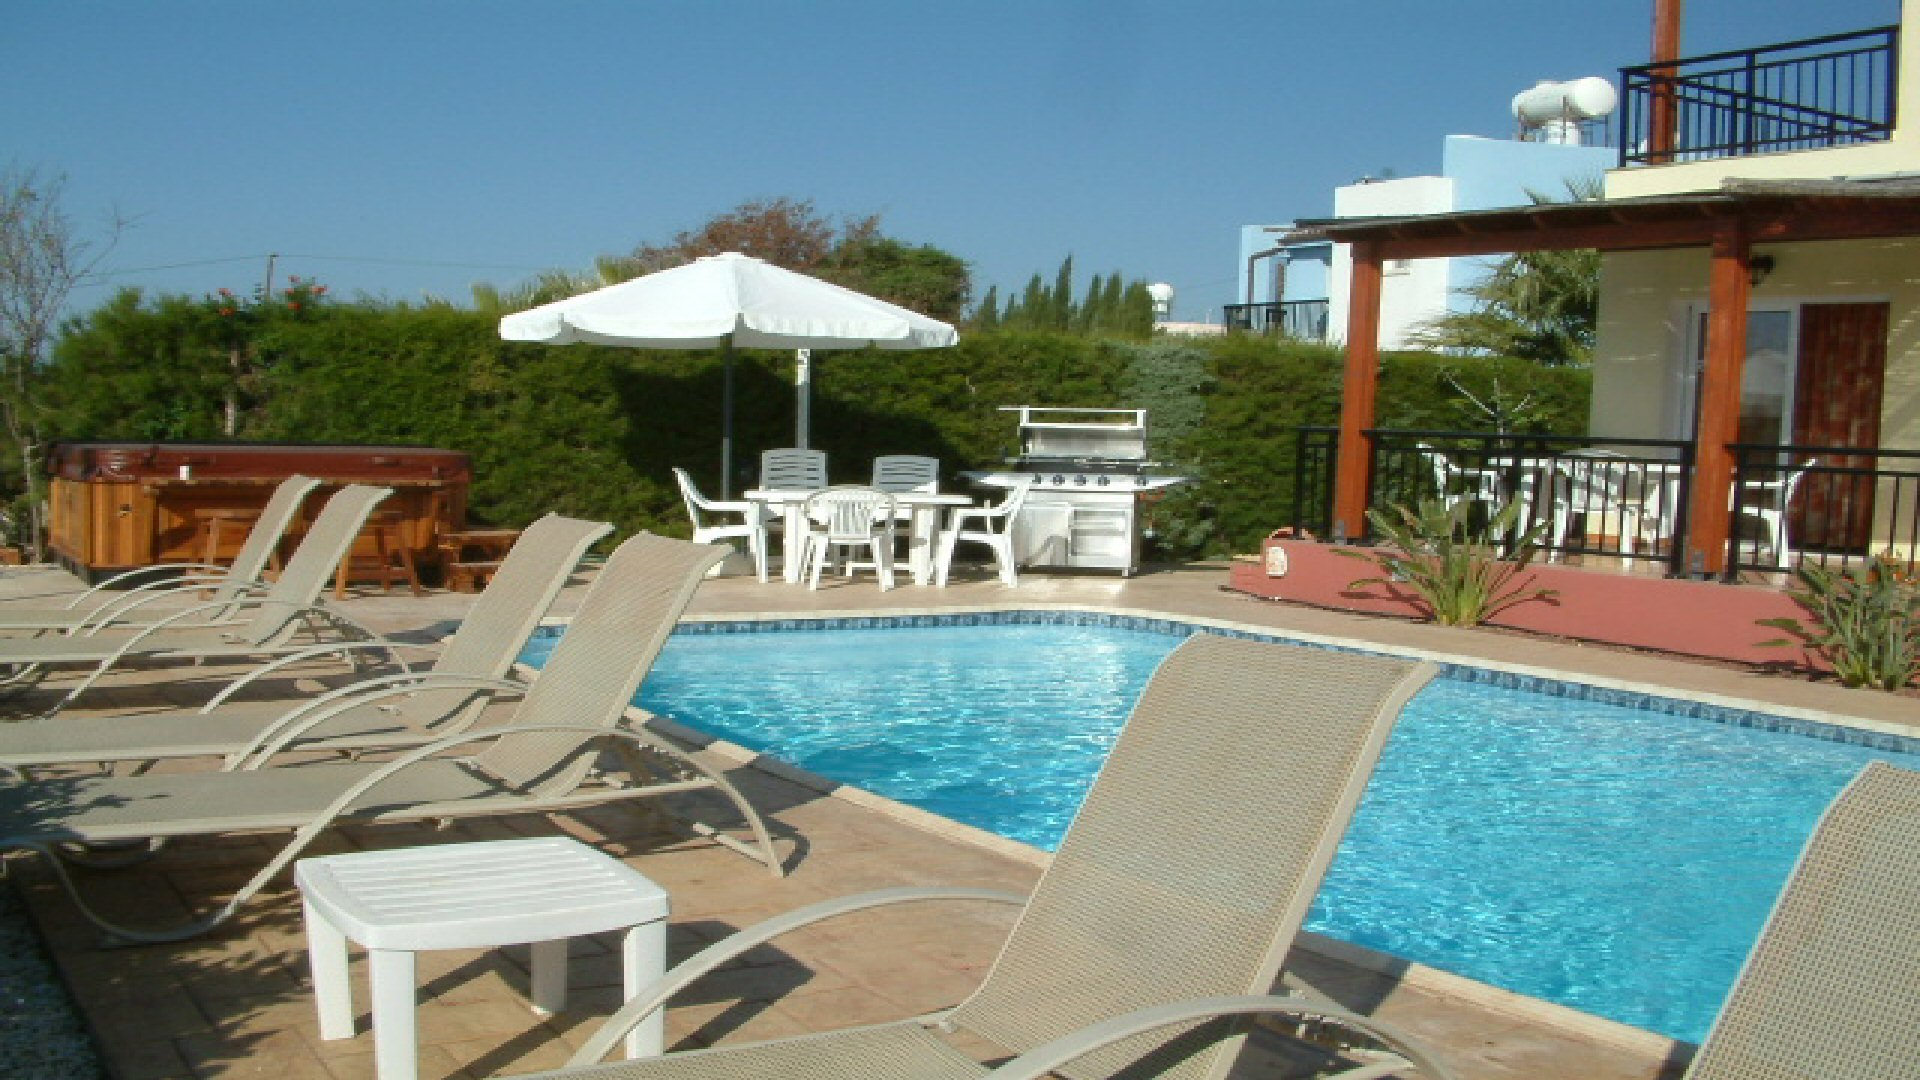 Villa holidays. Renting the holiday villa Hieros Kepos